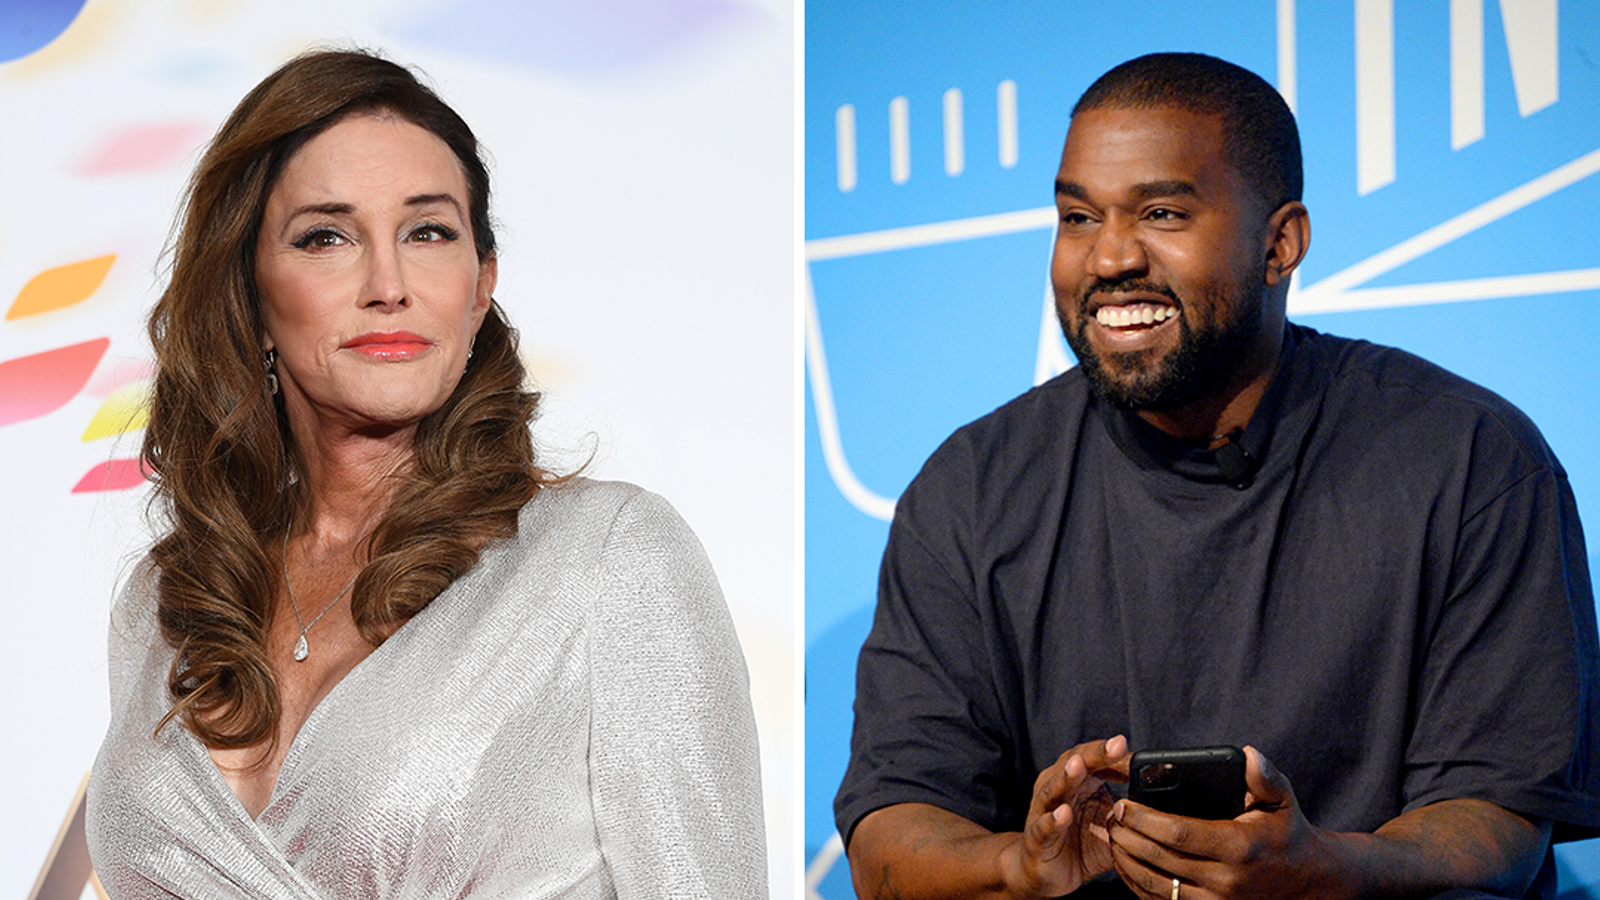 Kanye West labelled 'most kind, loving human being' by Caitlyn Jenner - Sky News